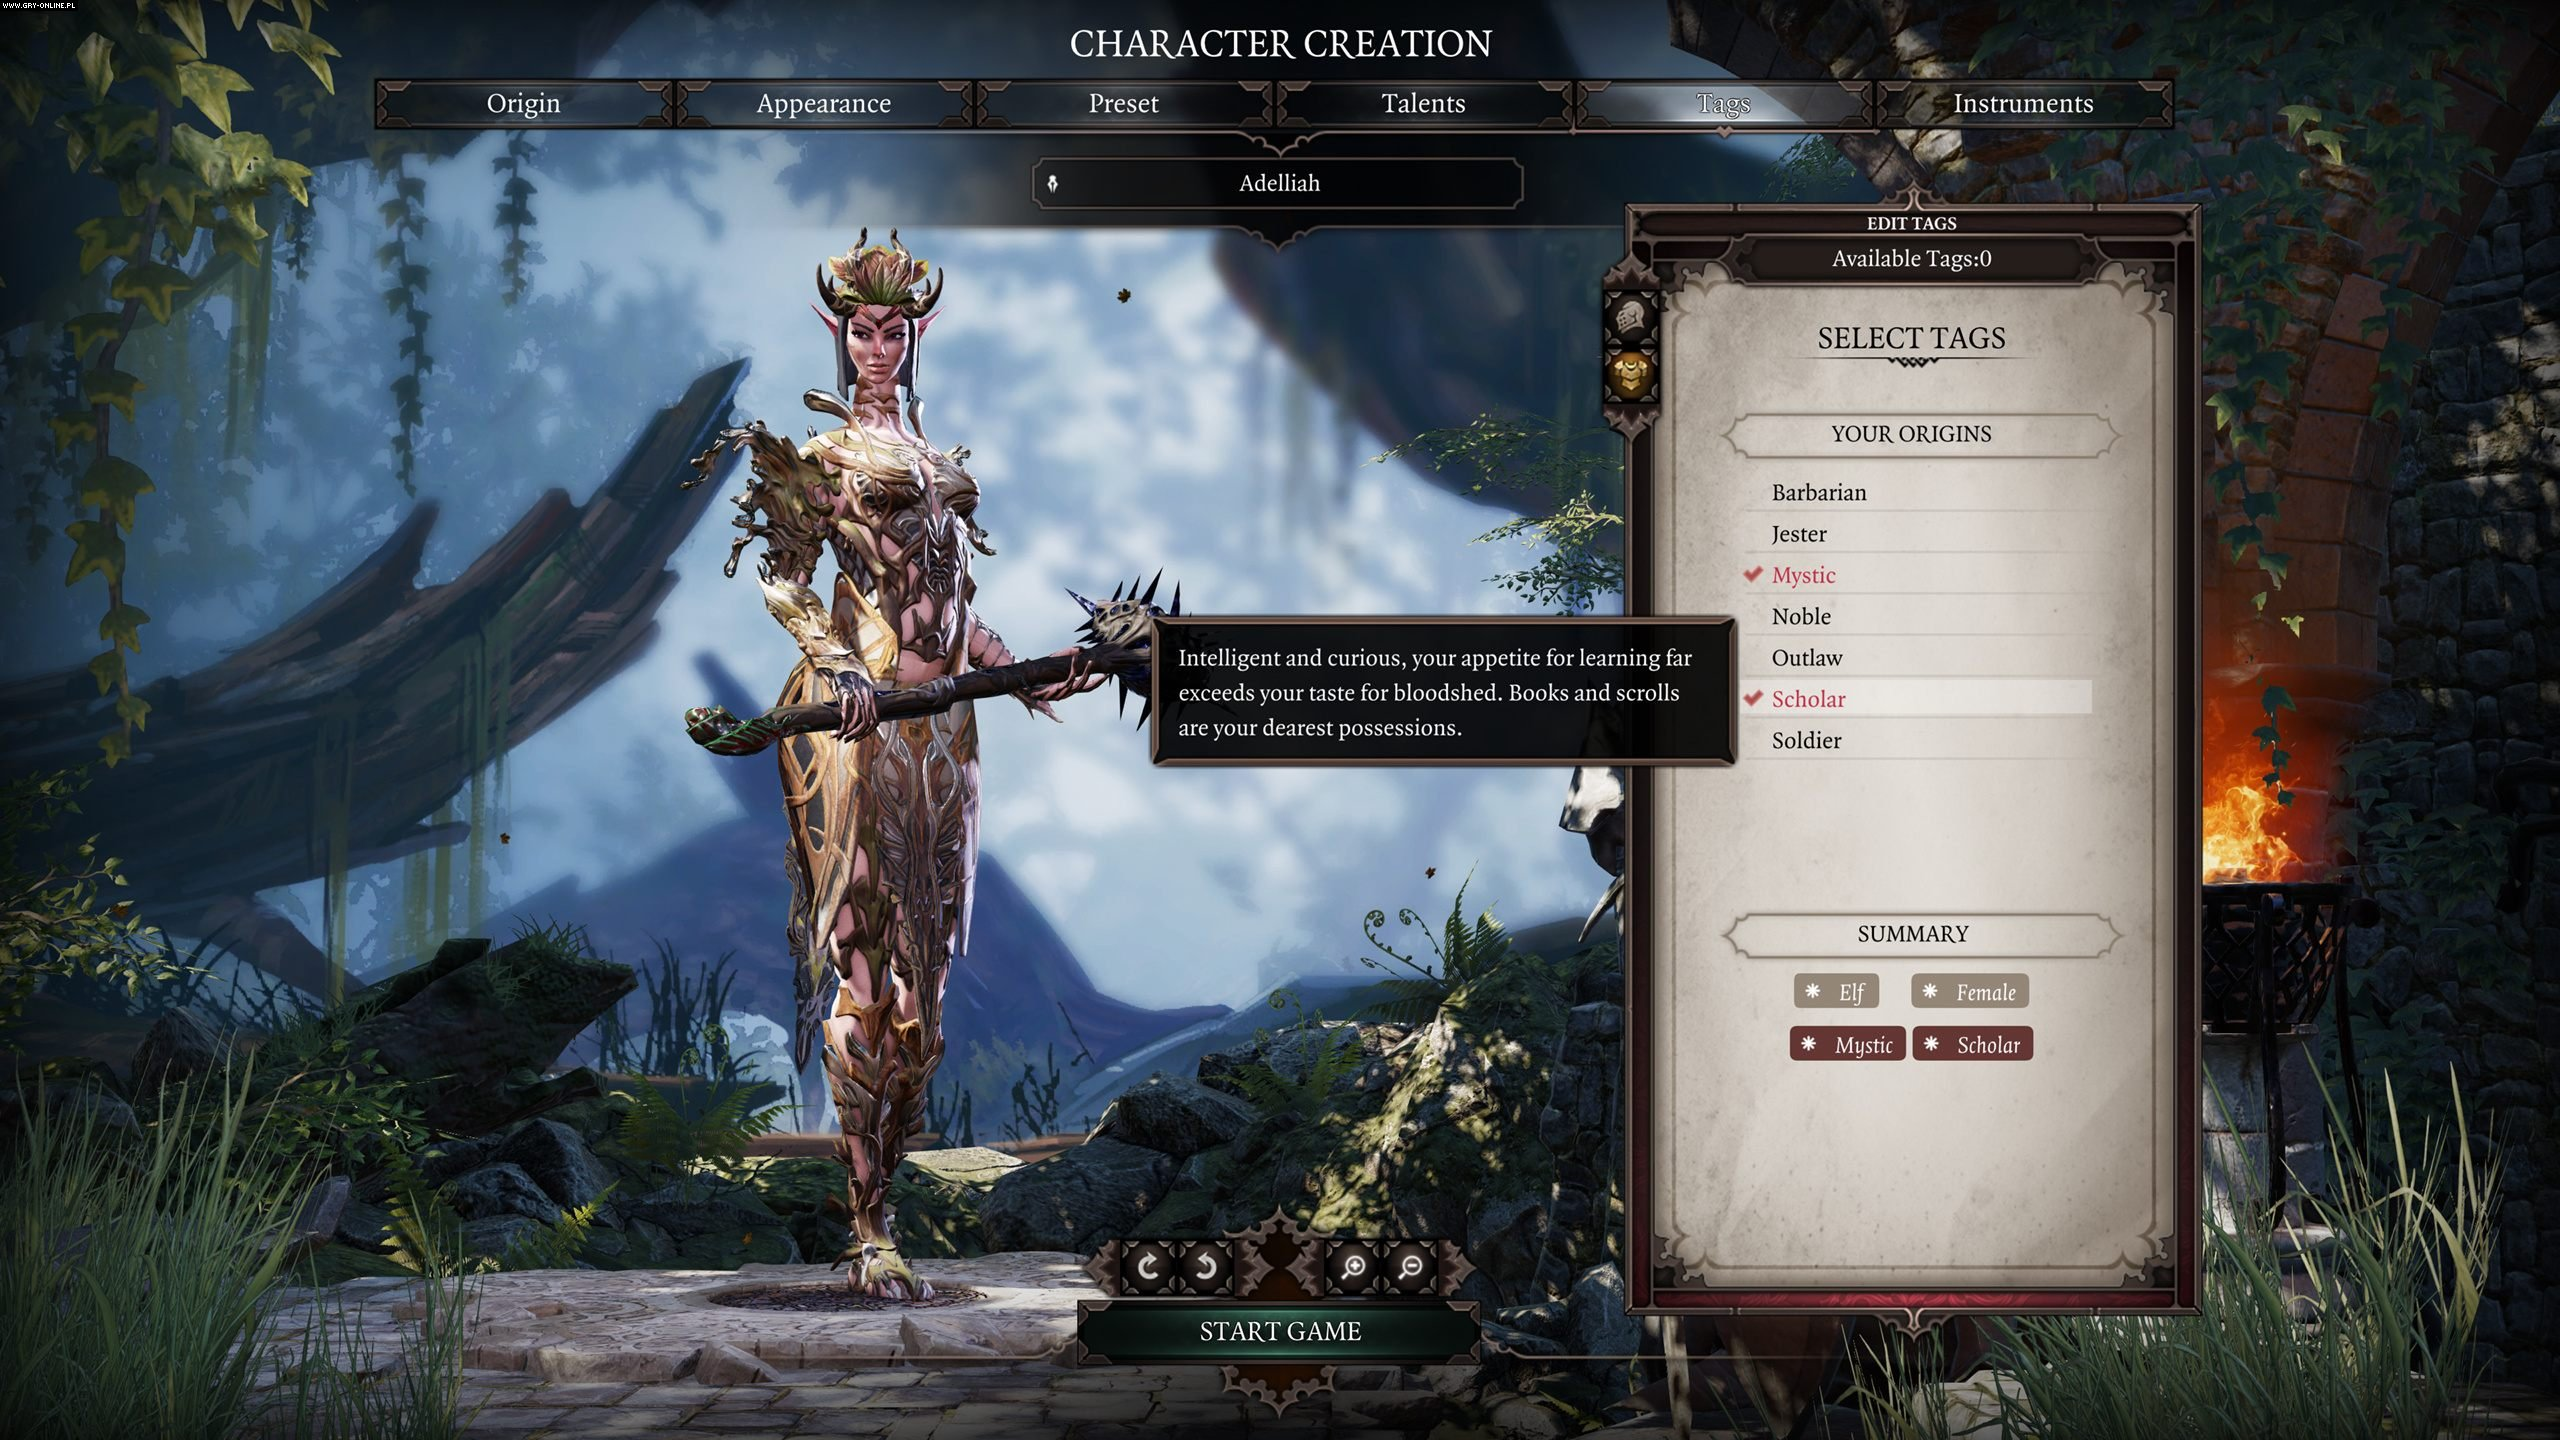 Divinity: Original Sin II - Definitive Edition PC Games Image 108/304, Larian Studios